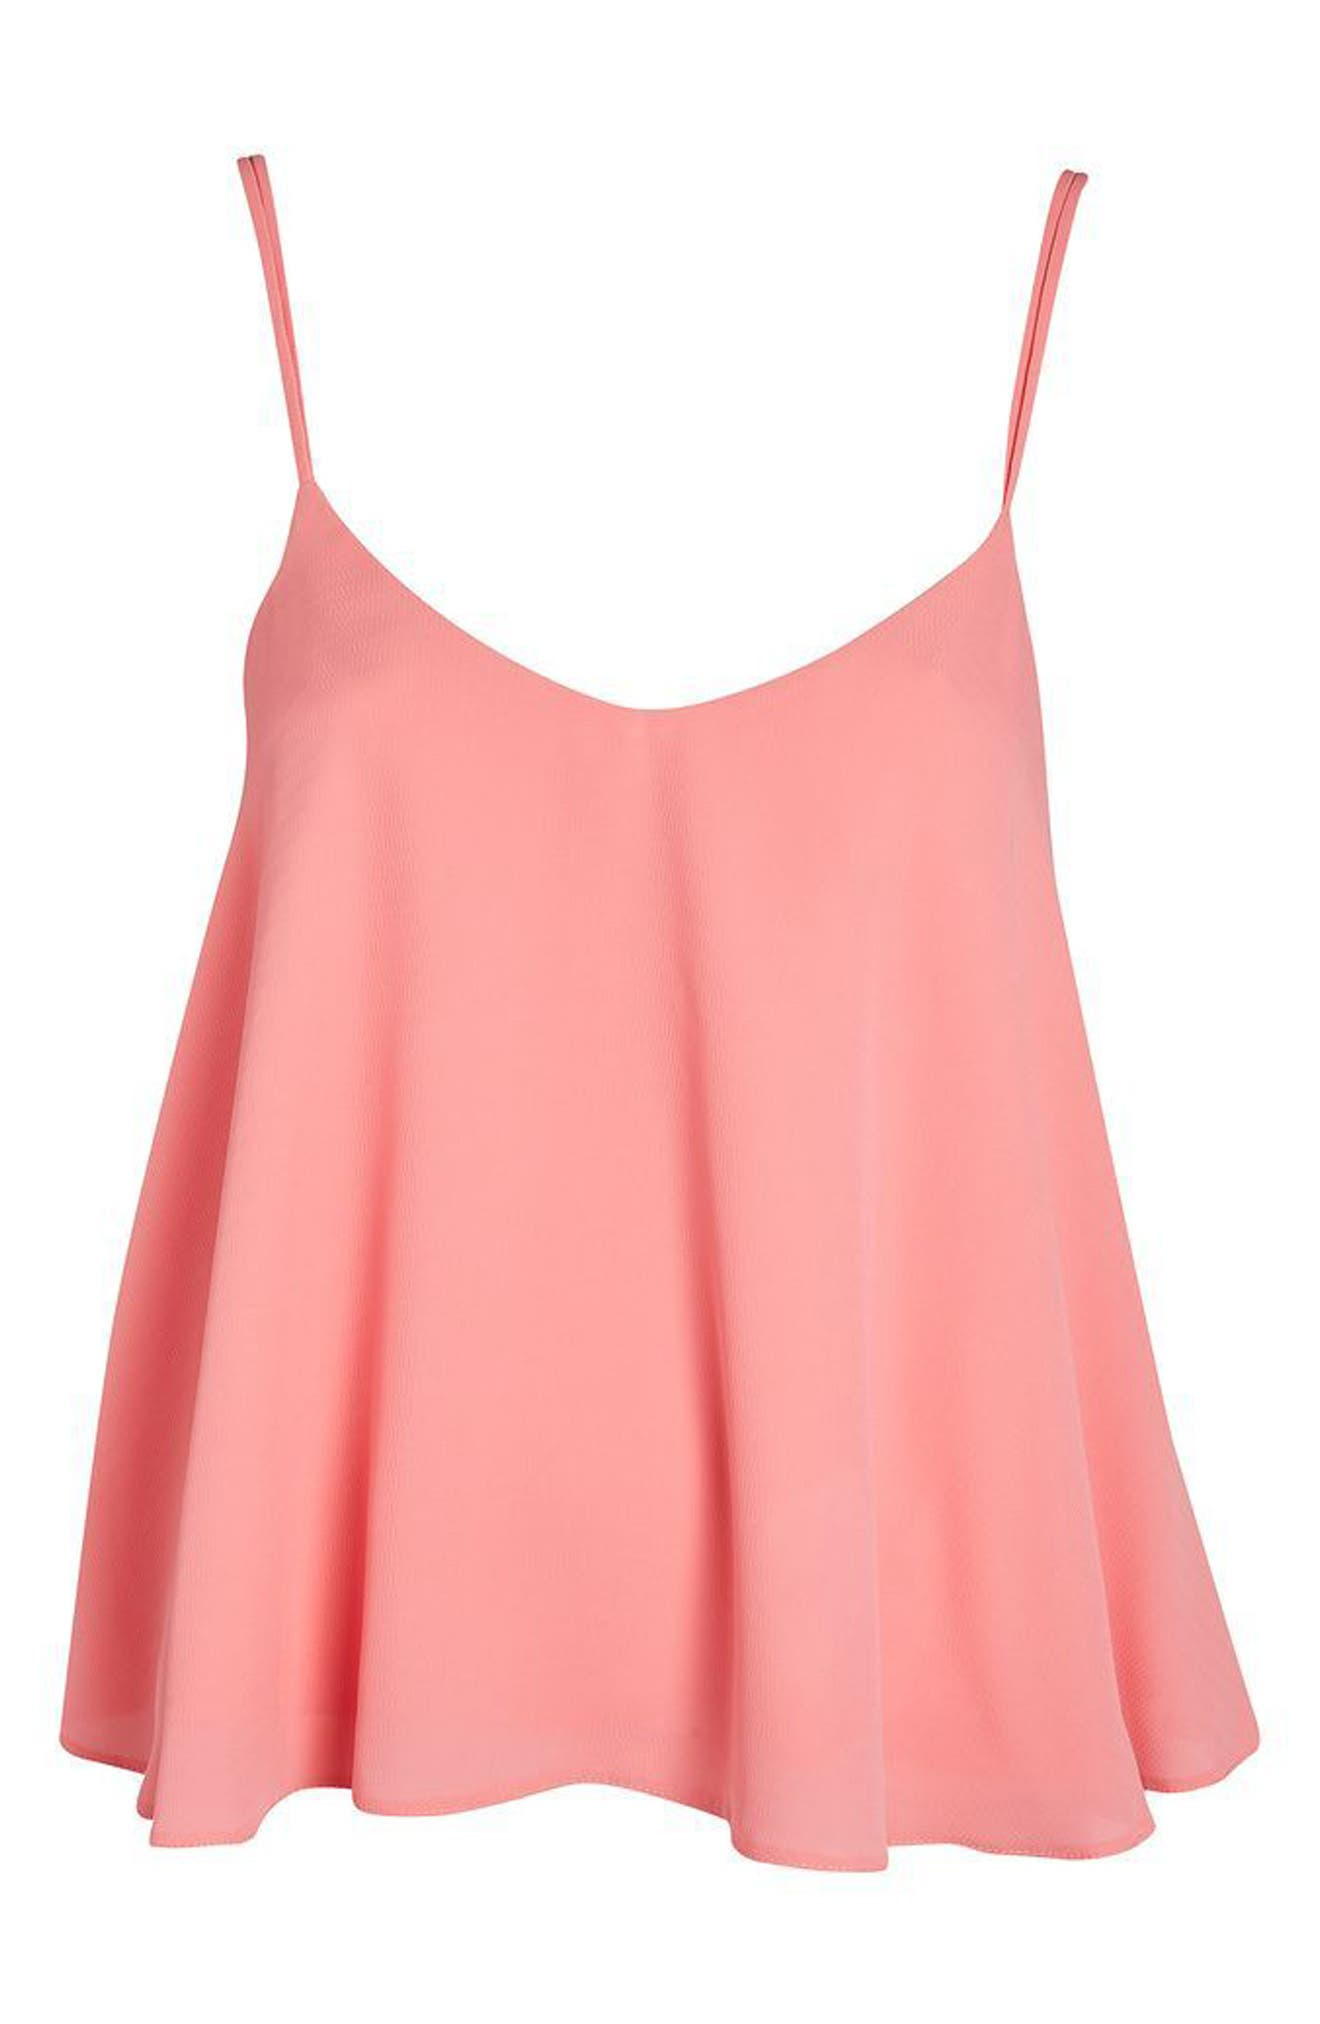 Rouleau Swing Camisole,                             Alternate thumbnail 52, color,